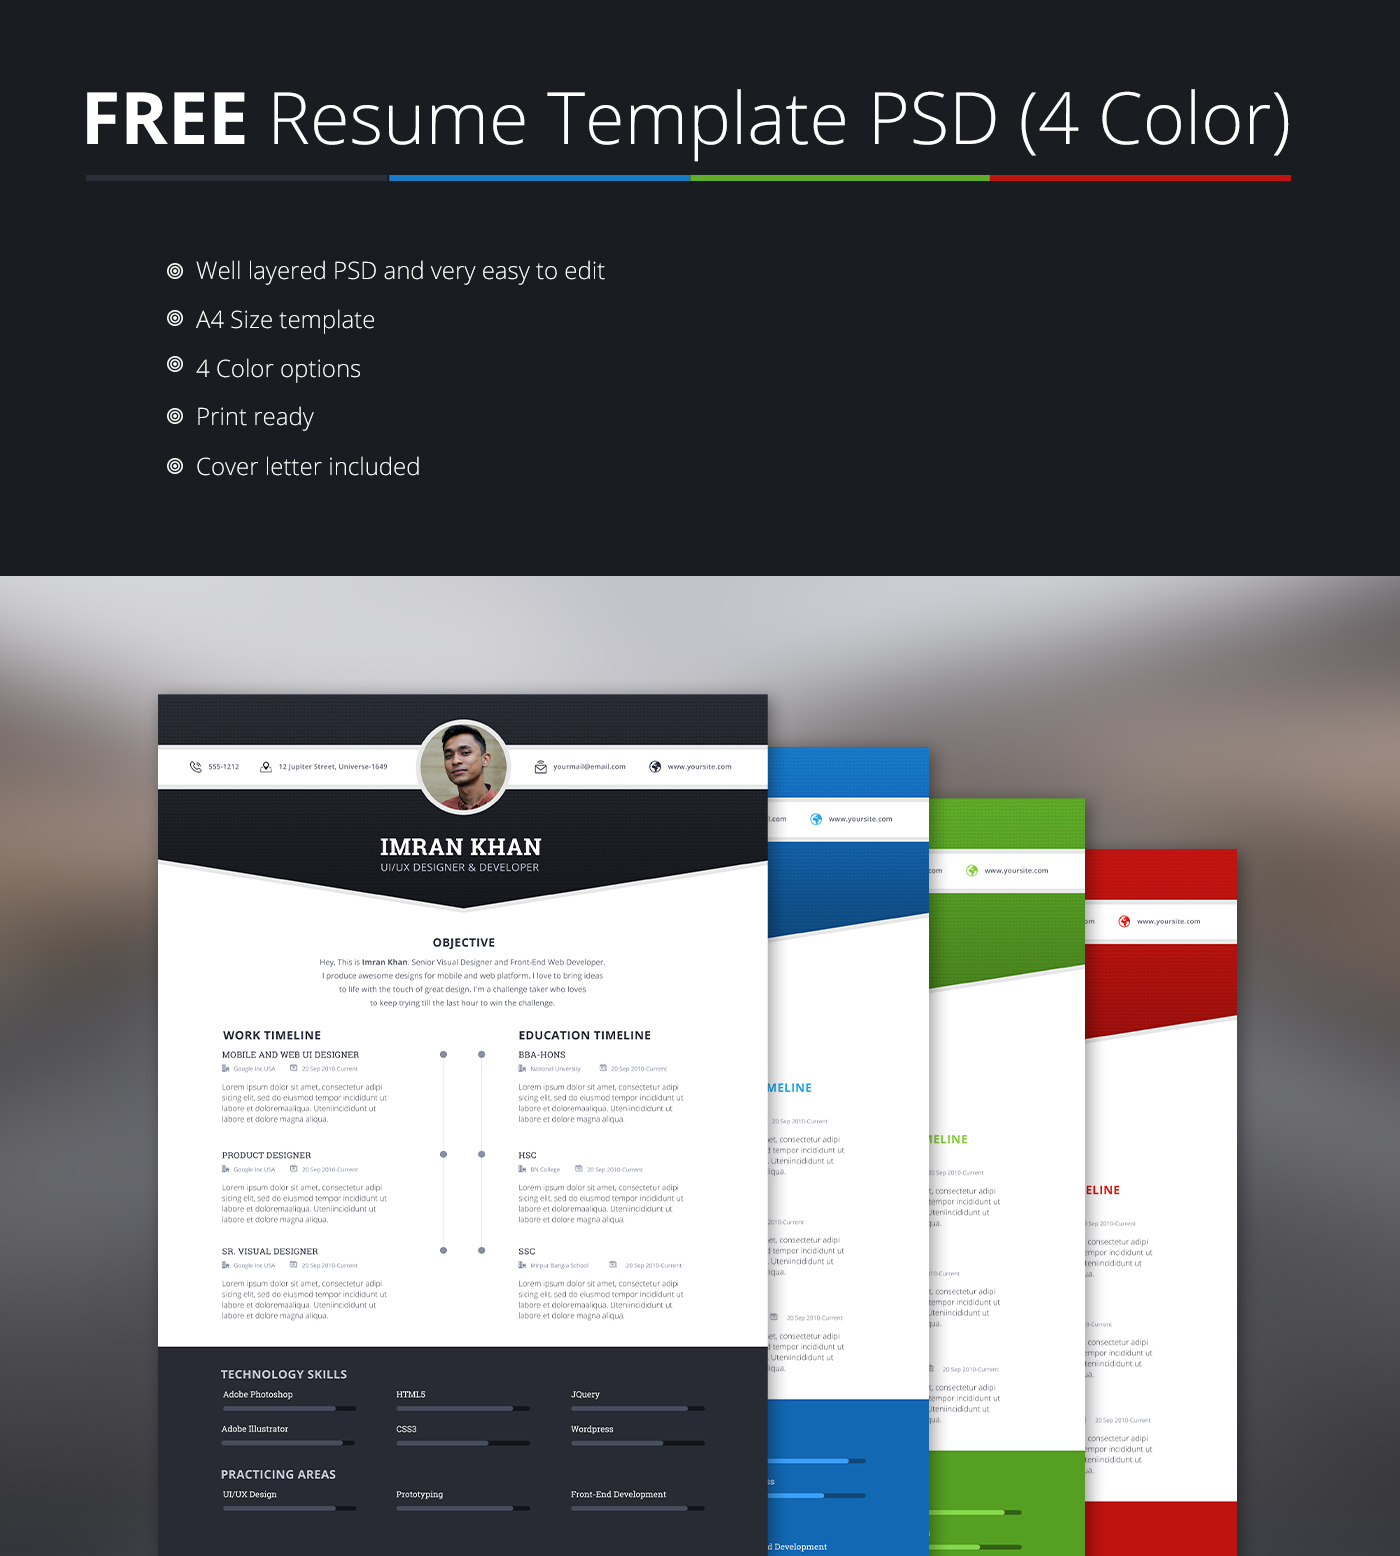 Free Psd Resume Template in Four Colors-1